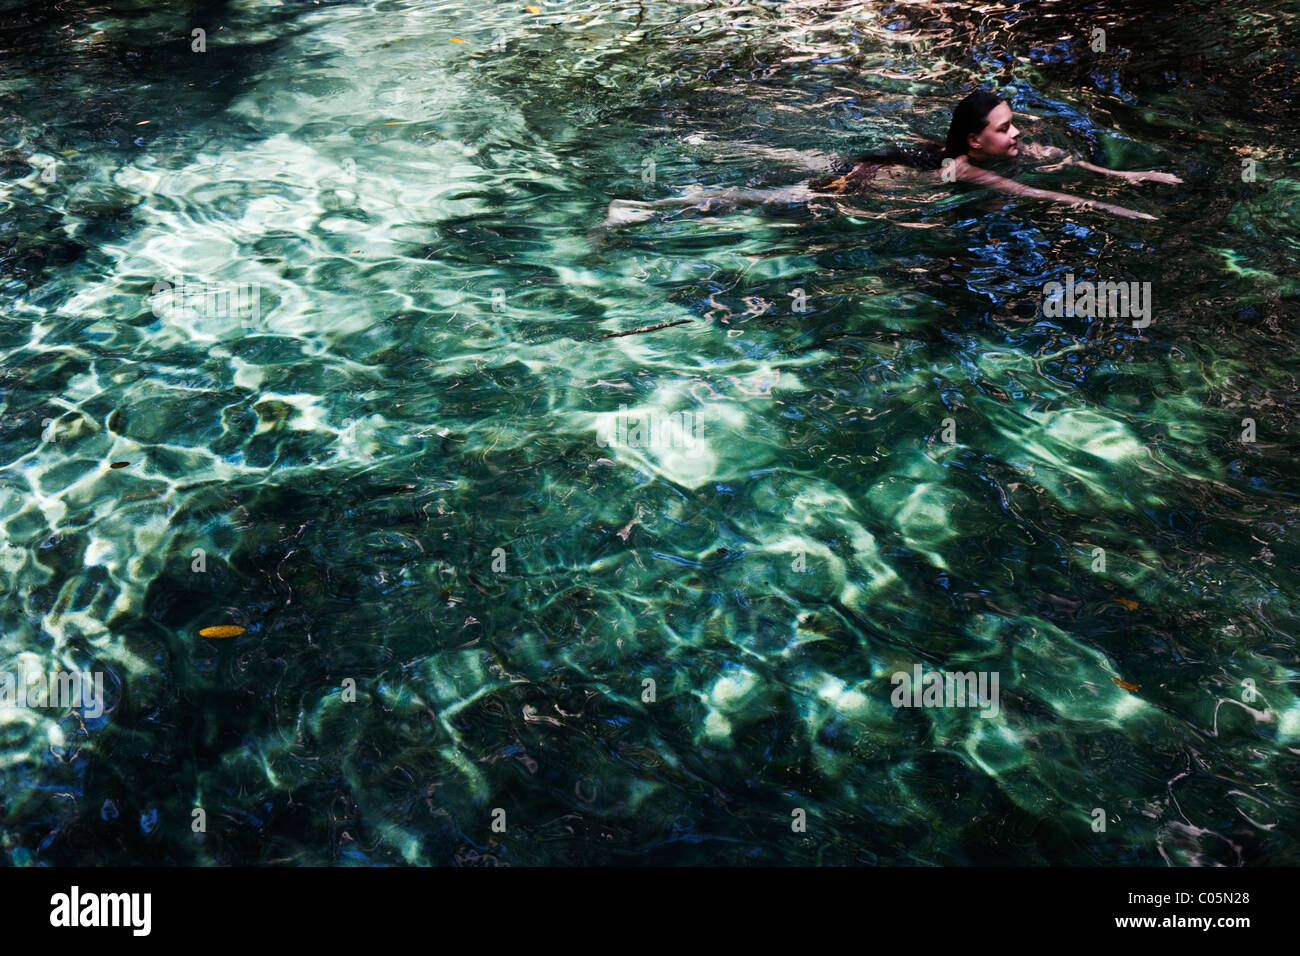 Swimming in a limestone cenote, or water filled cavern, a uniquely Yucatecan geological feature, Mexico - Stock Image